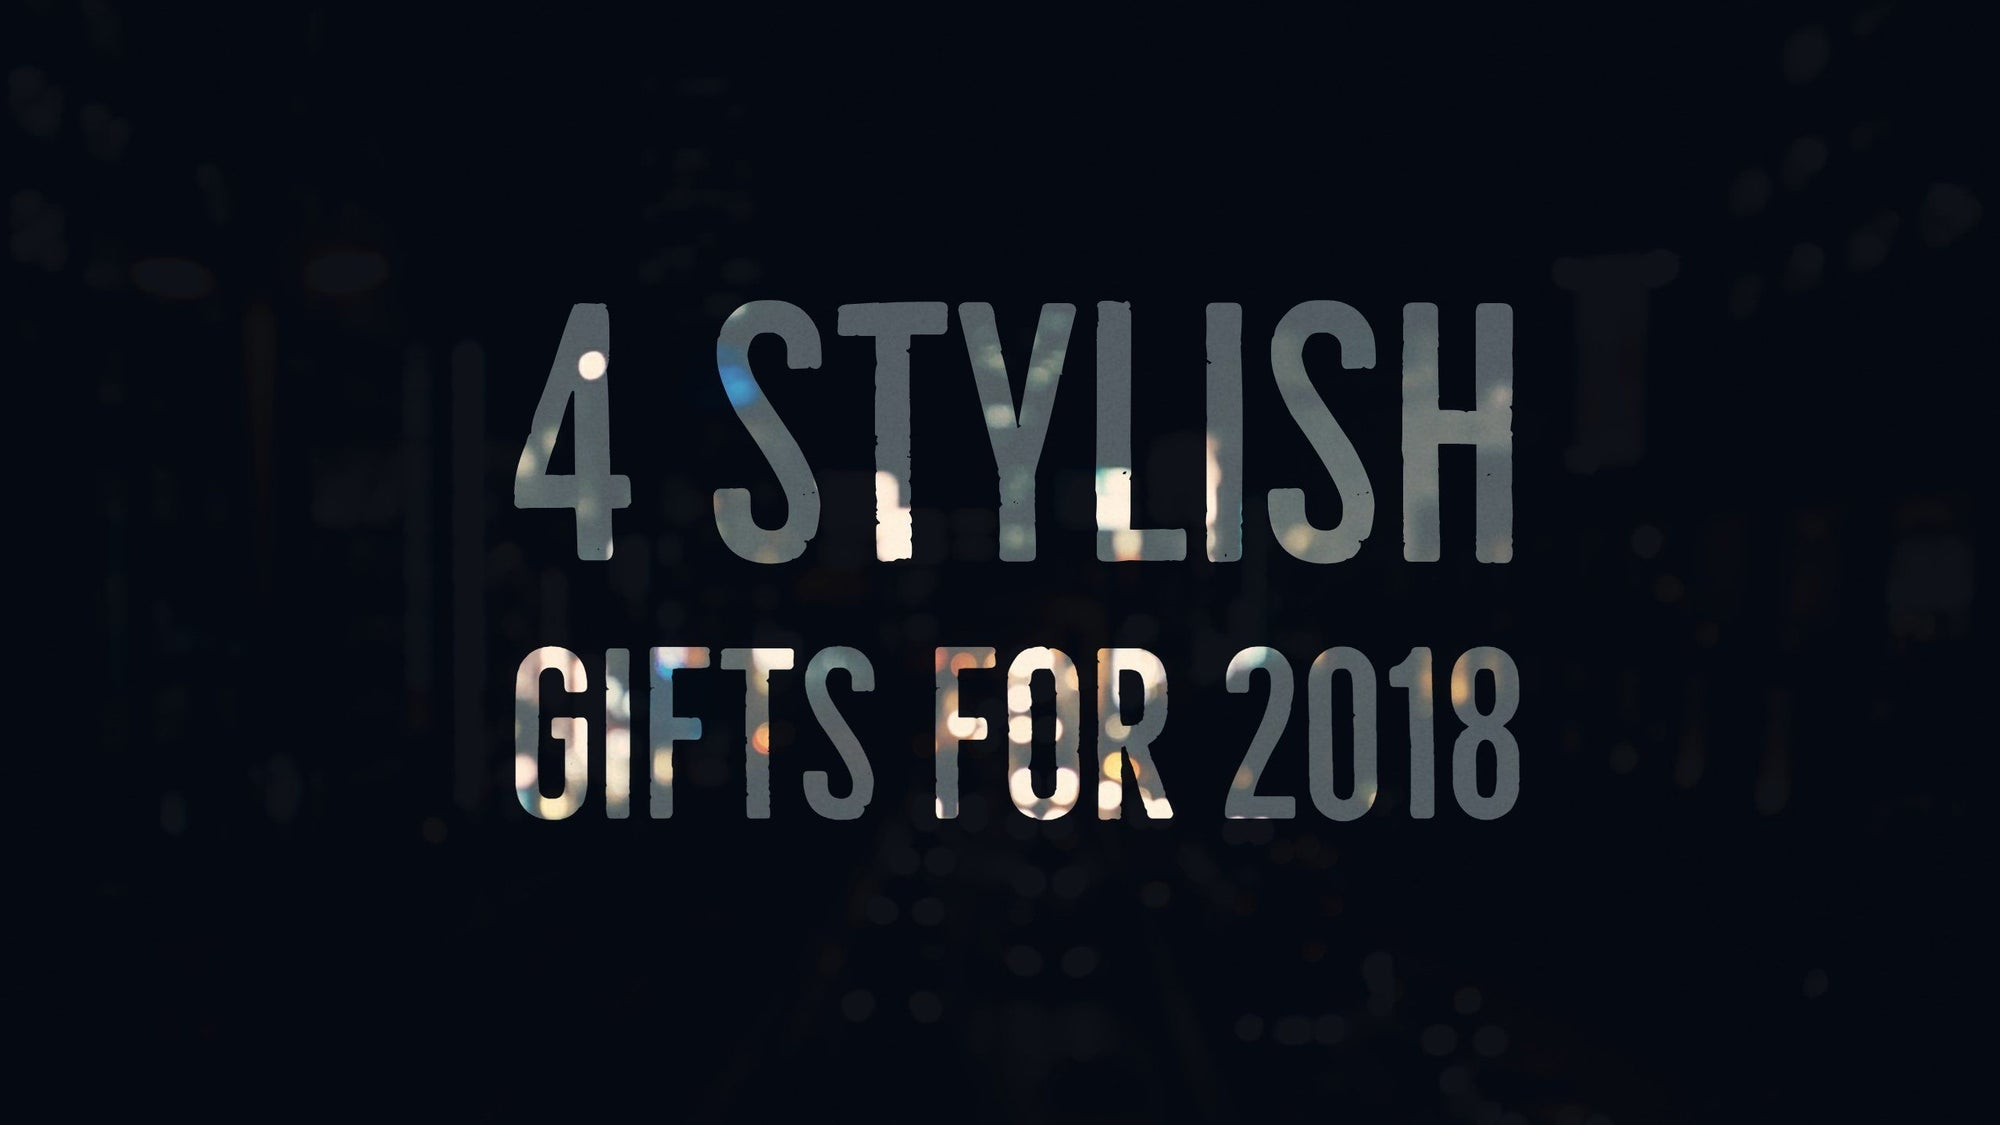 4 Stylish Gifts for 2018